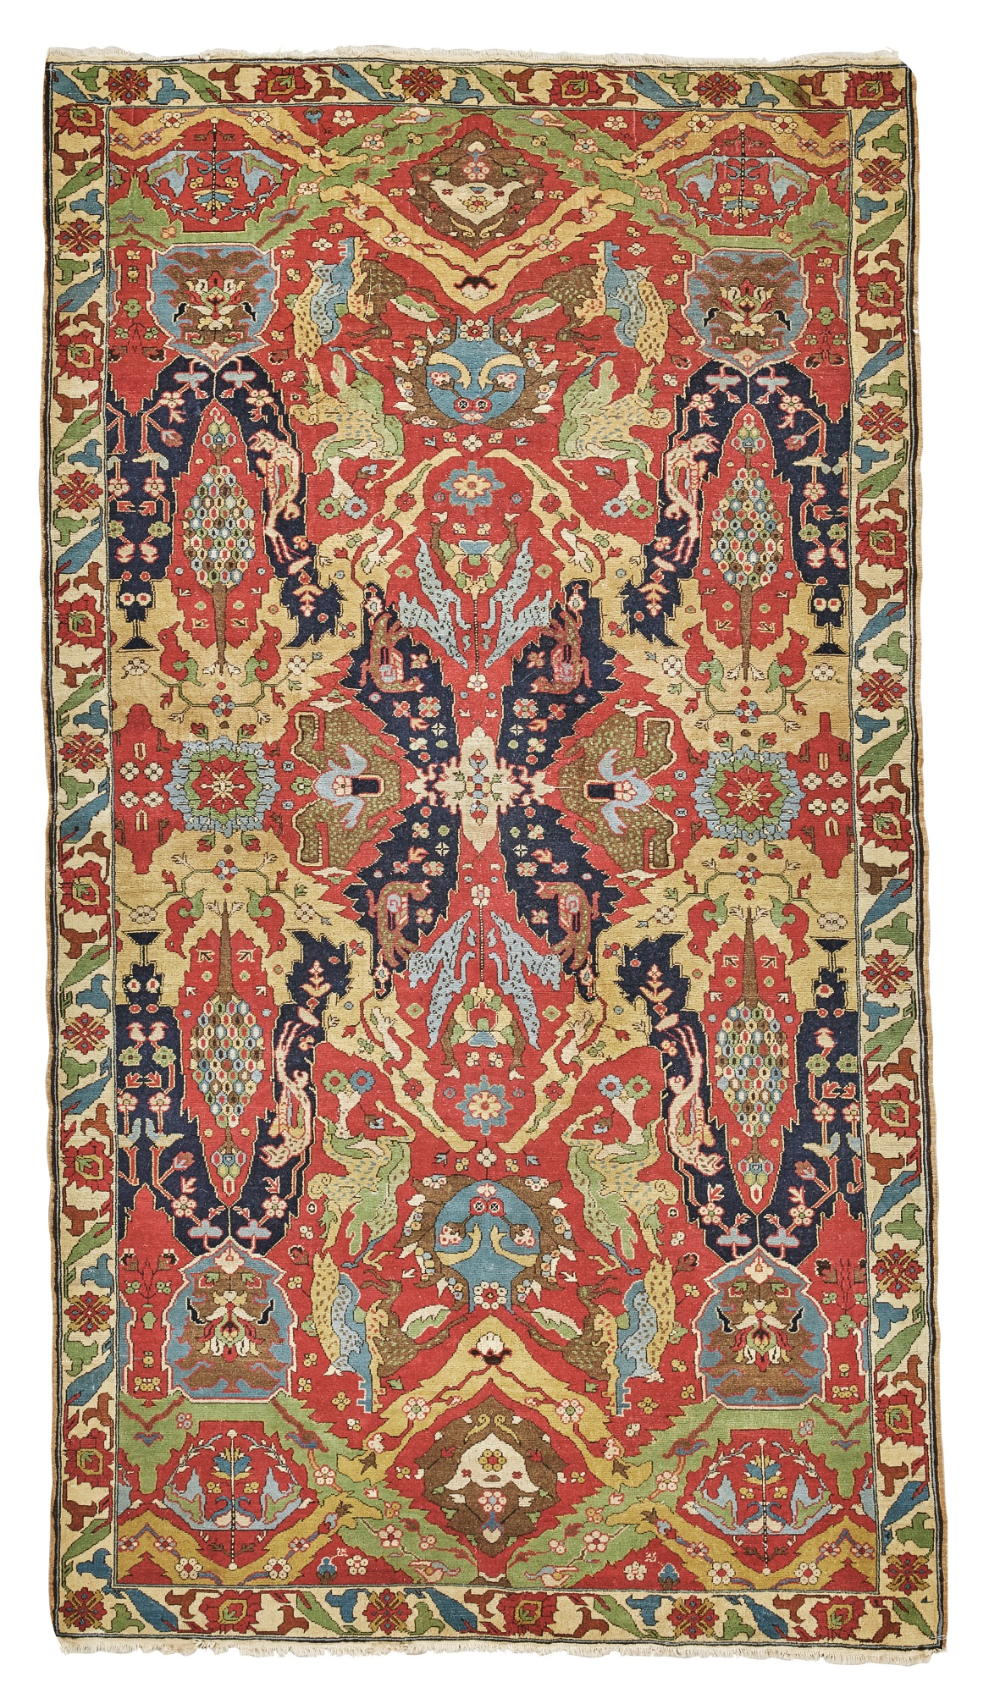 Dragon Style Carpet Probably Theodore Tuduc Romania C 1930 10ft 5in 5ft 11in Nel 2020 Tappeti